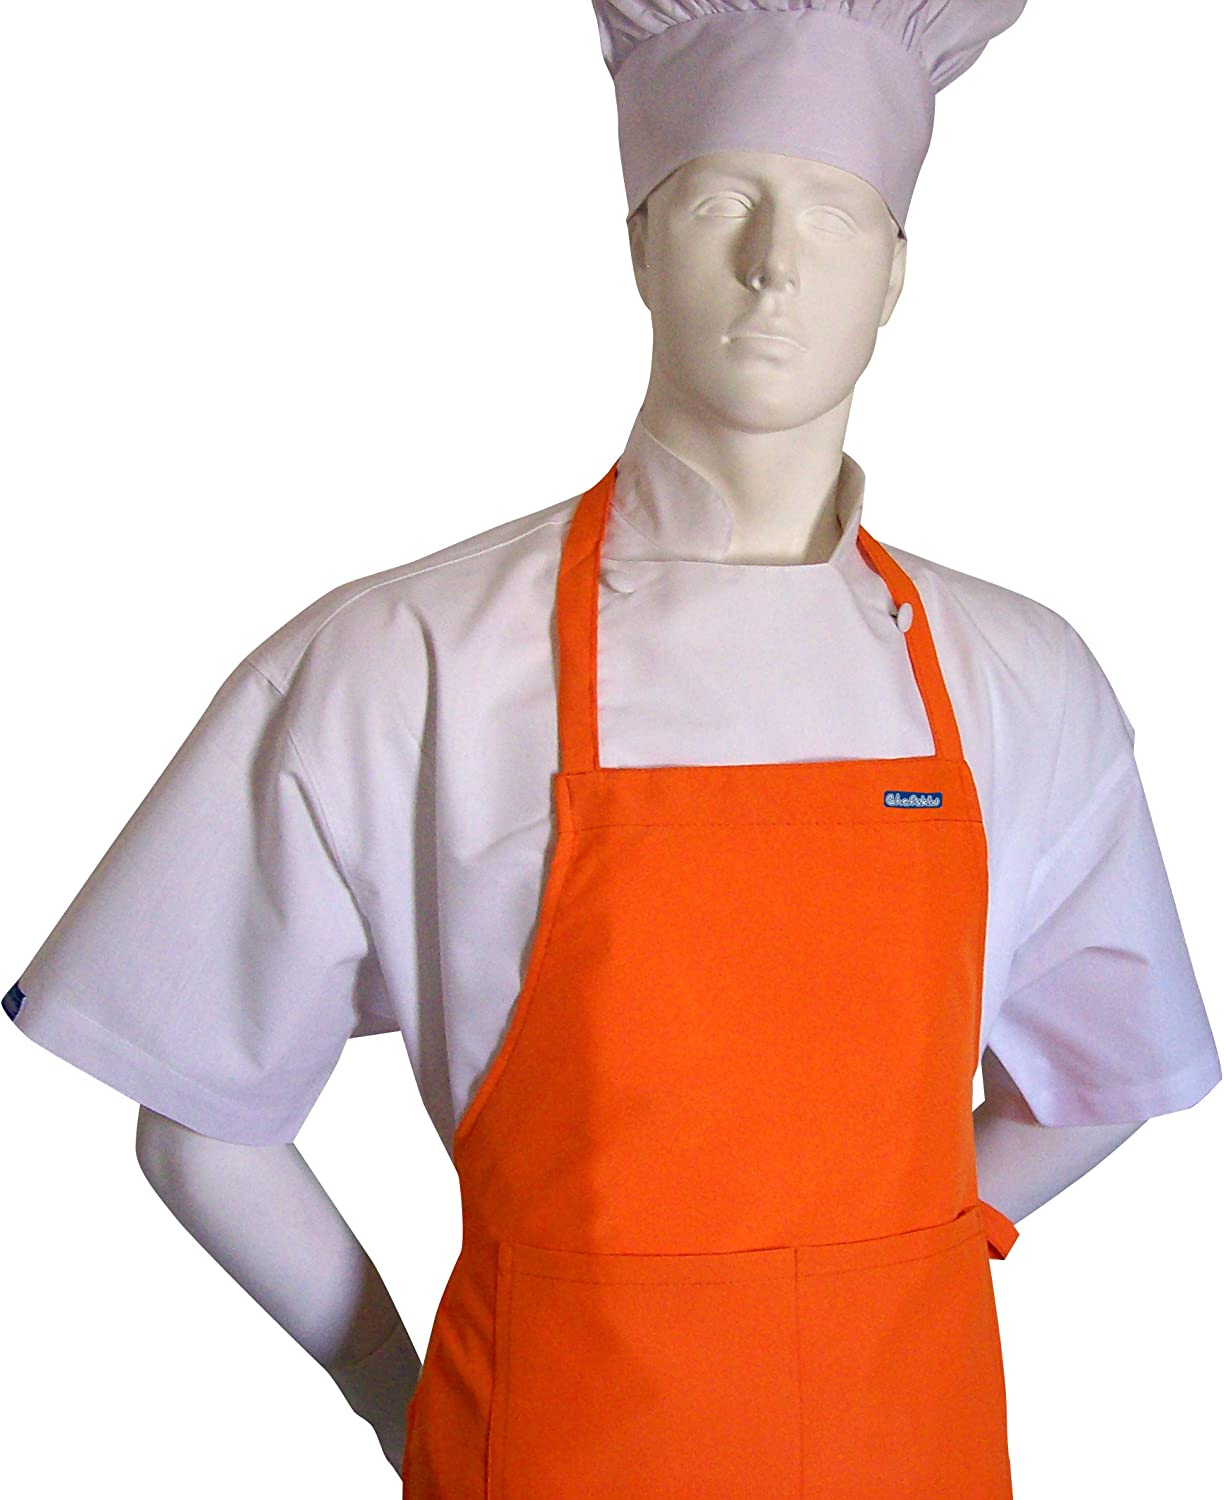 Tangy Orange Color Apron Teens OFFicial site CHEFSKIN for Rare From